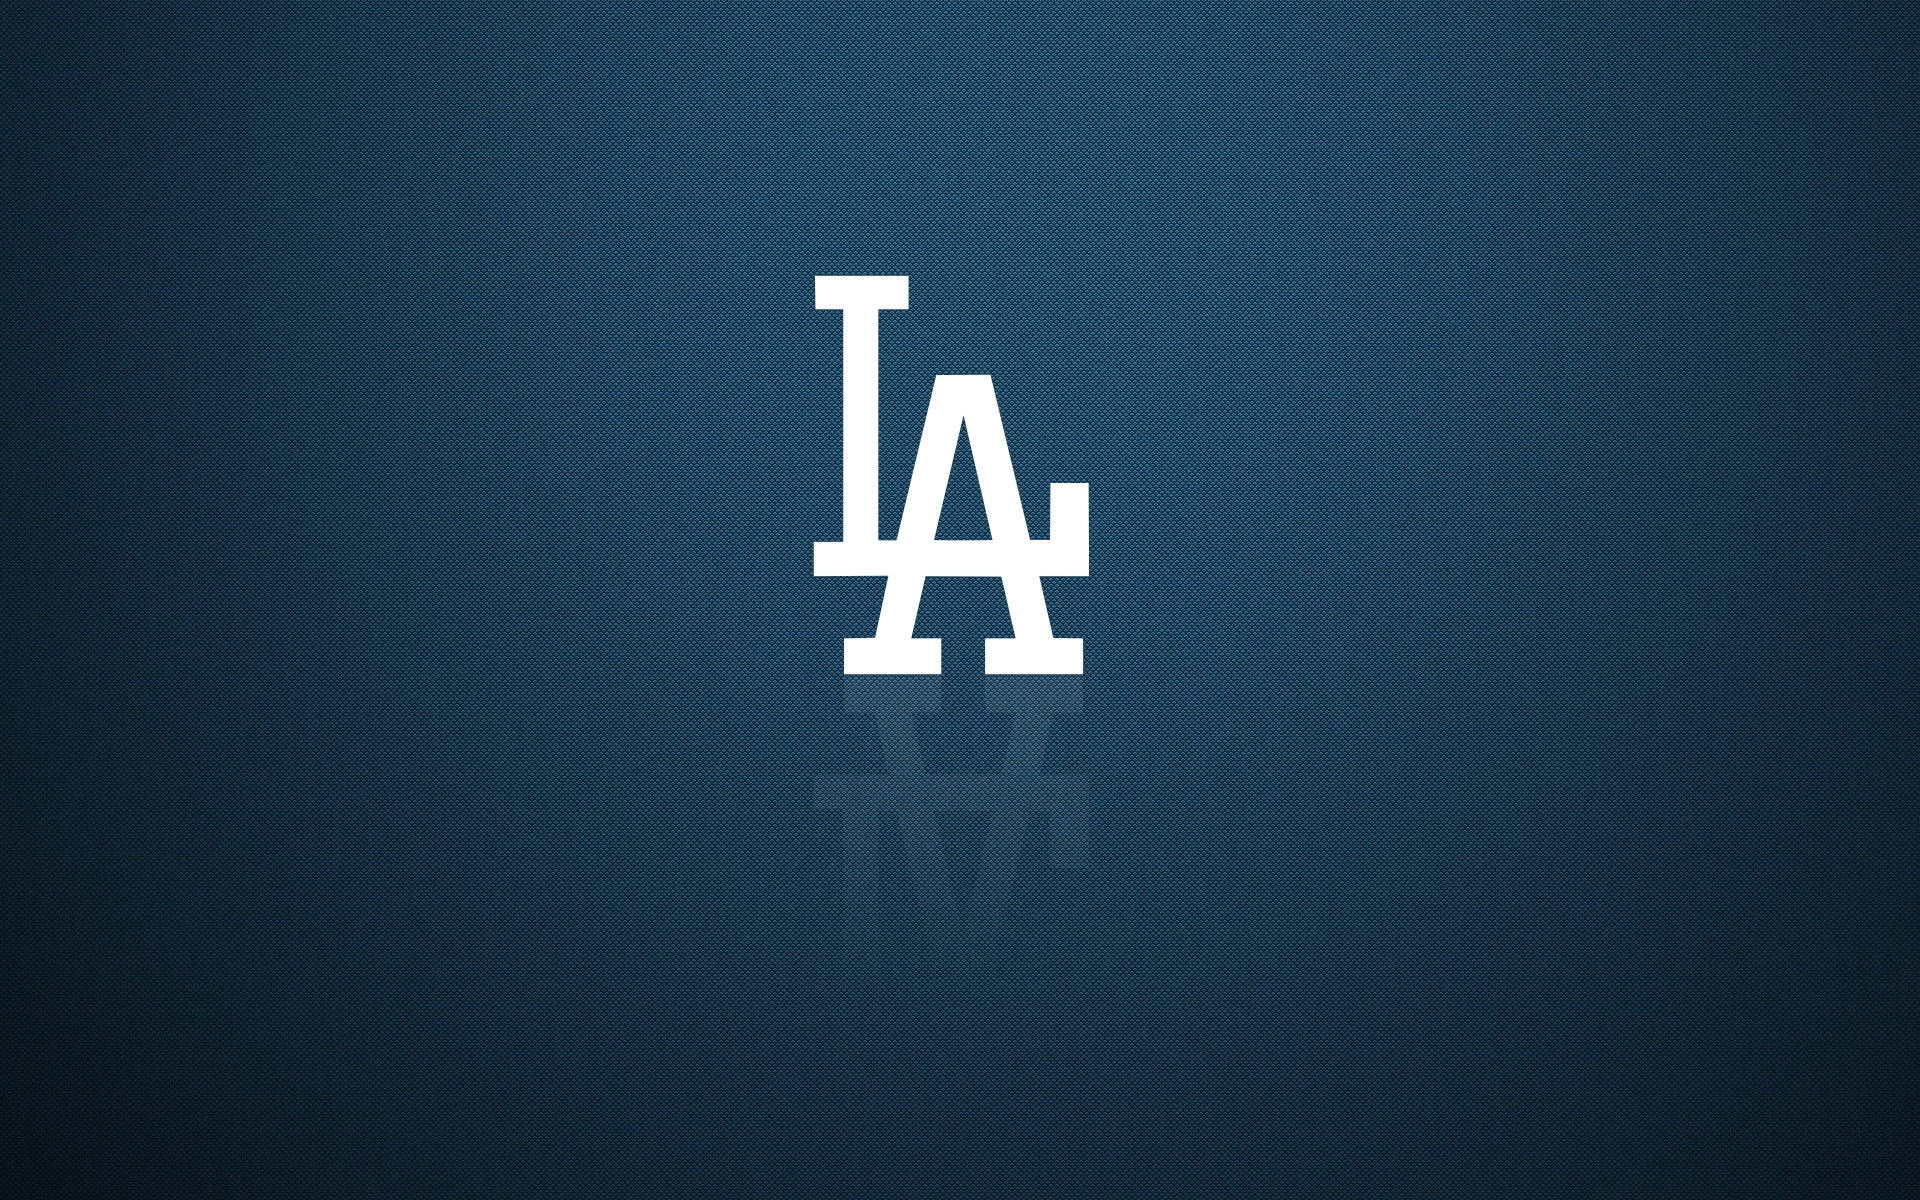 los angeles dodgers wallpaper with white la logo 1920×1200 px